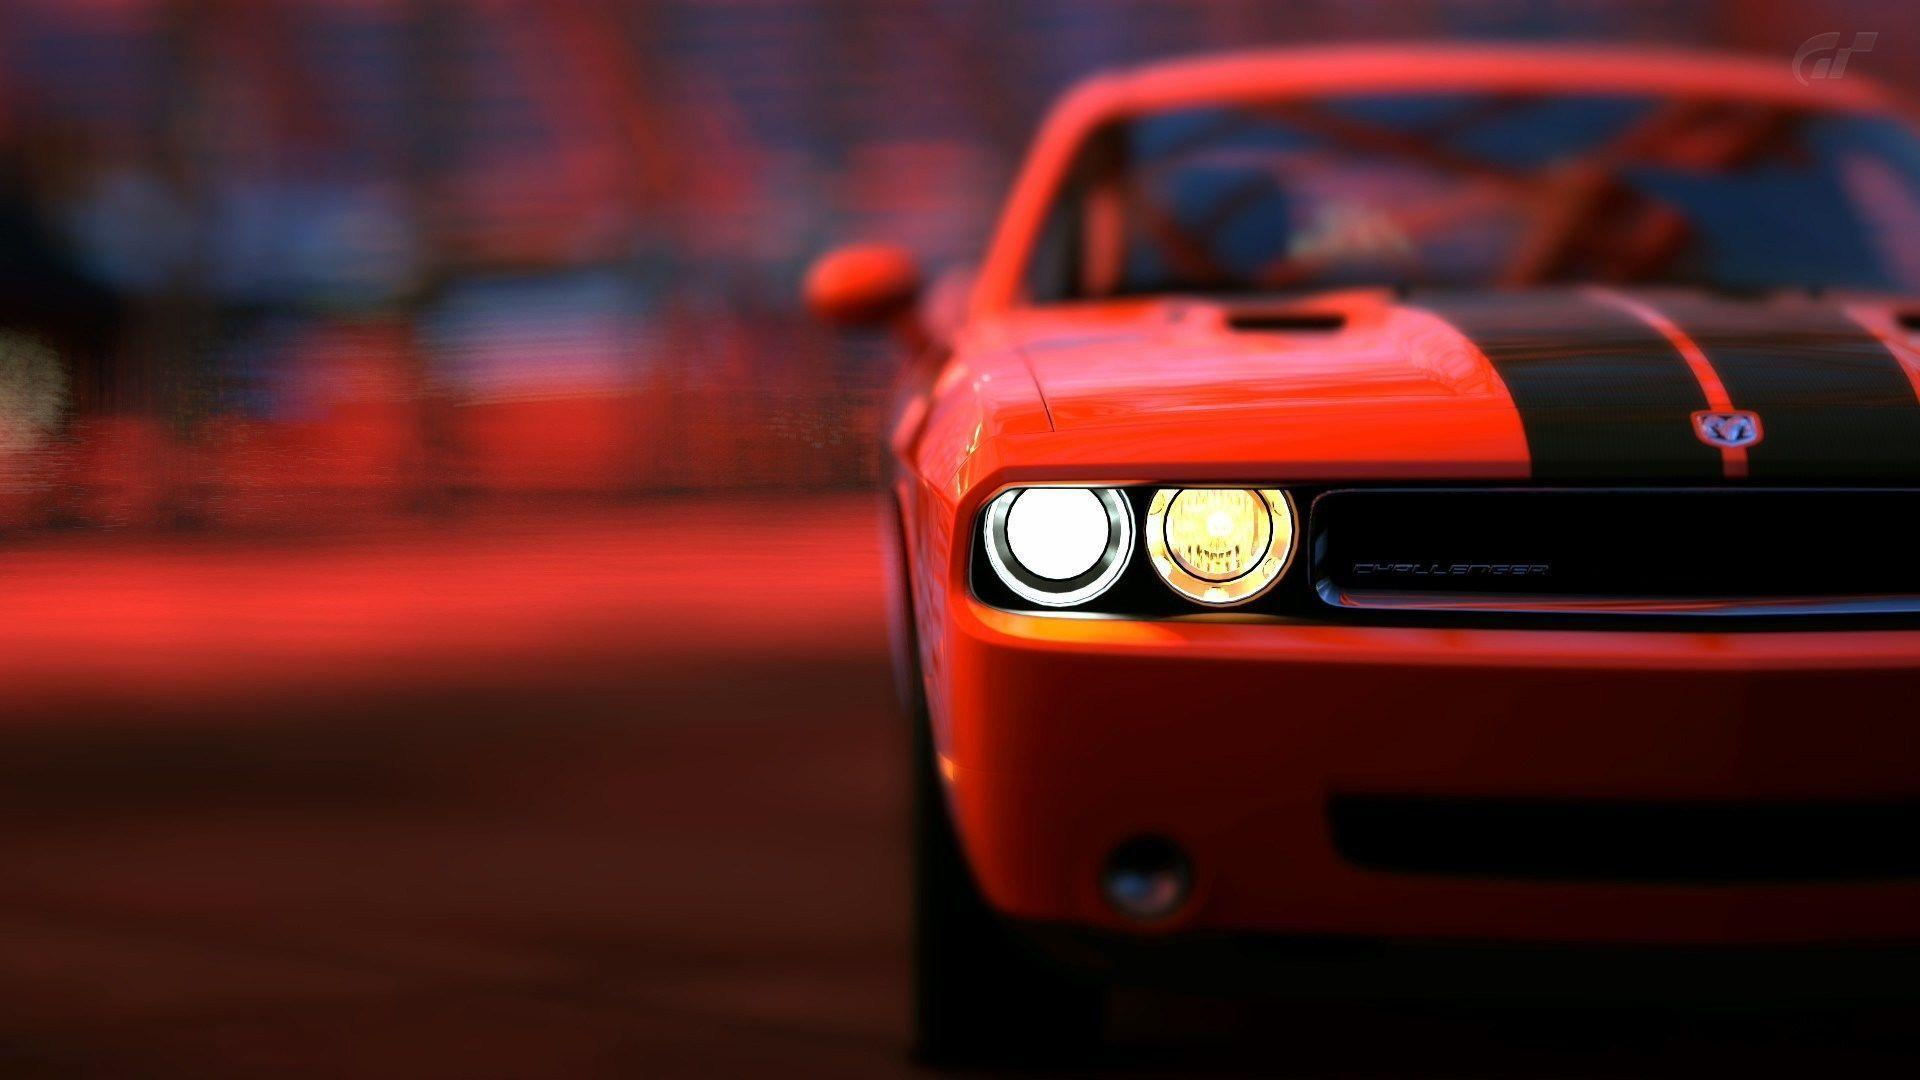 Dodge challenger wallpapers wallpaper cave dodge challenger str8 art night headlight hd wallpaper zoomwalls sciox Image collections